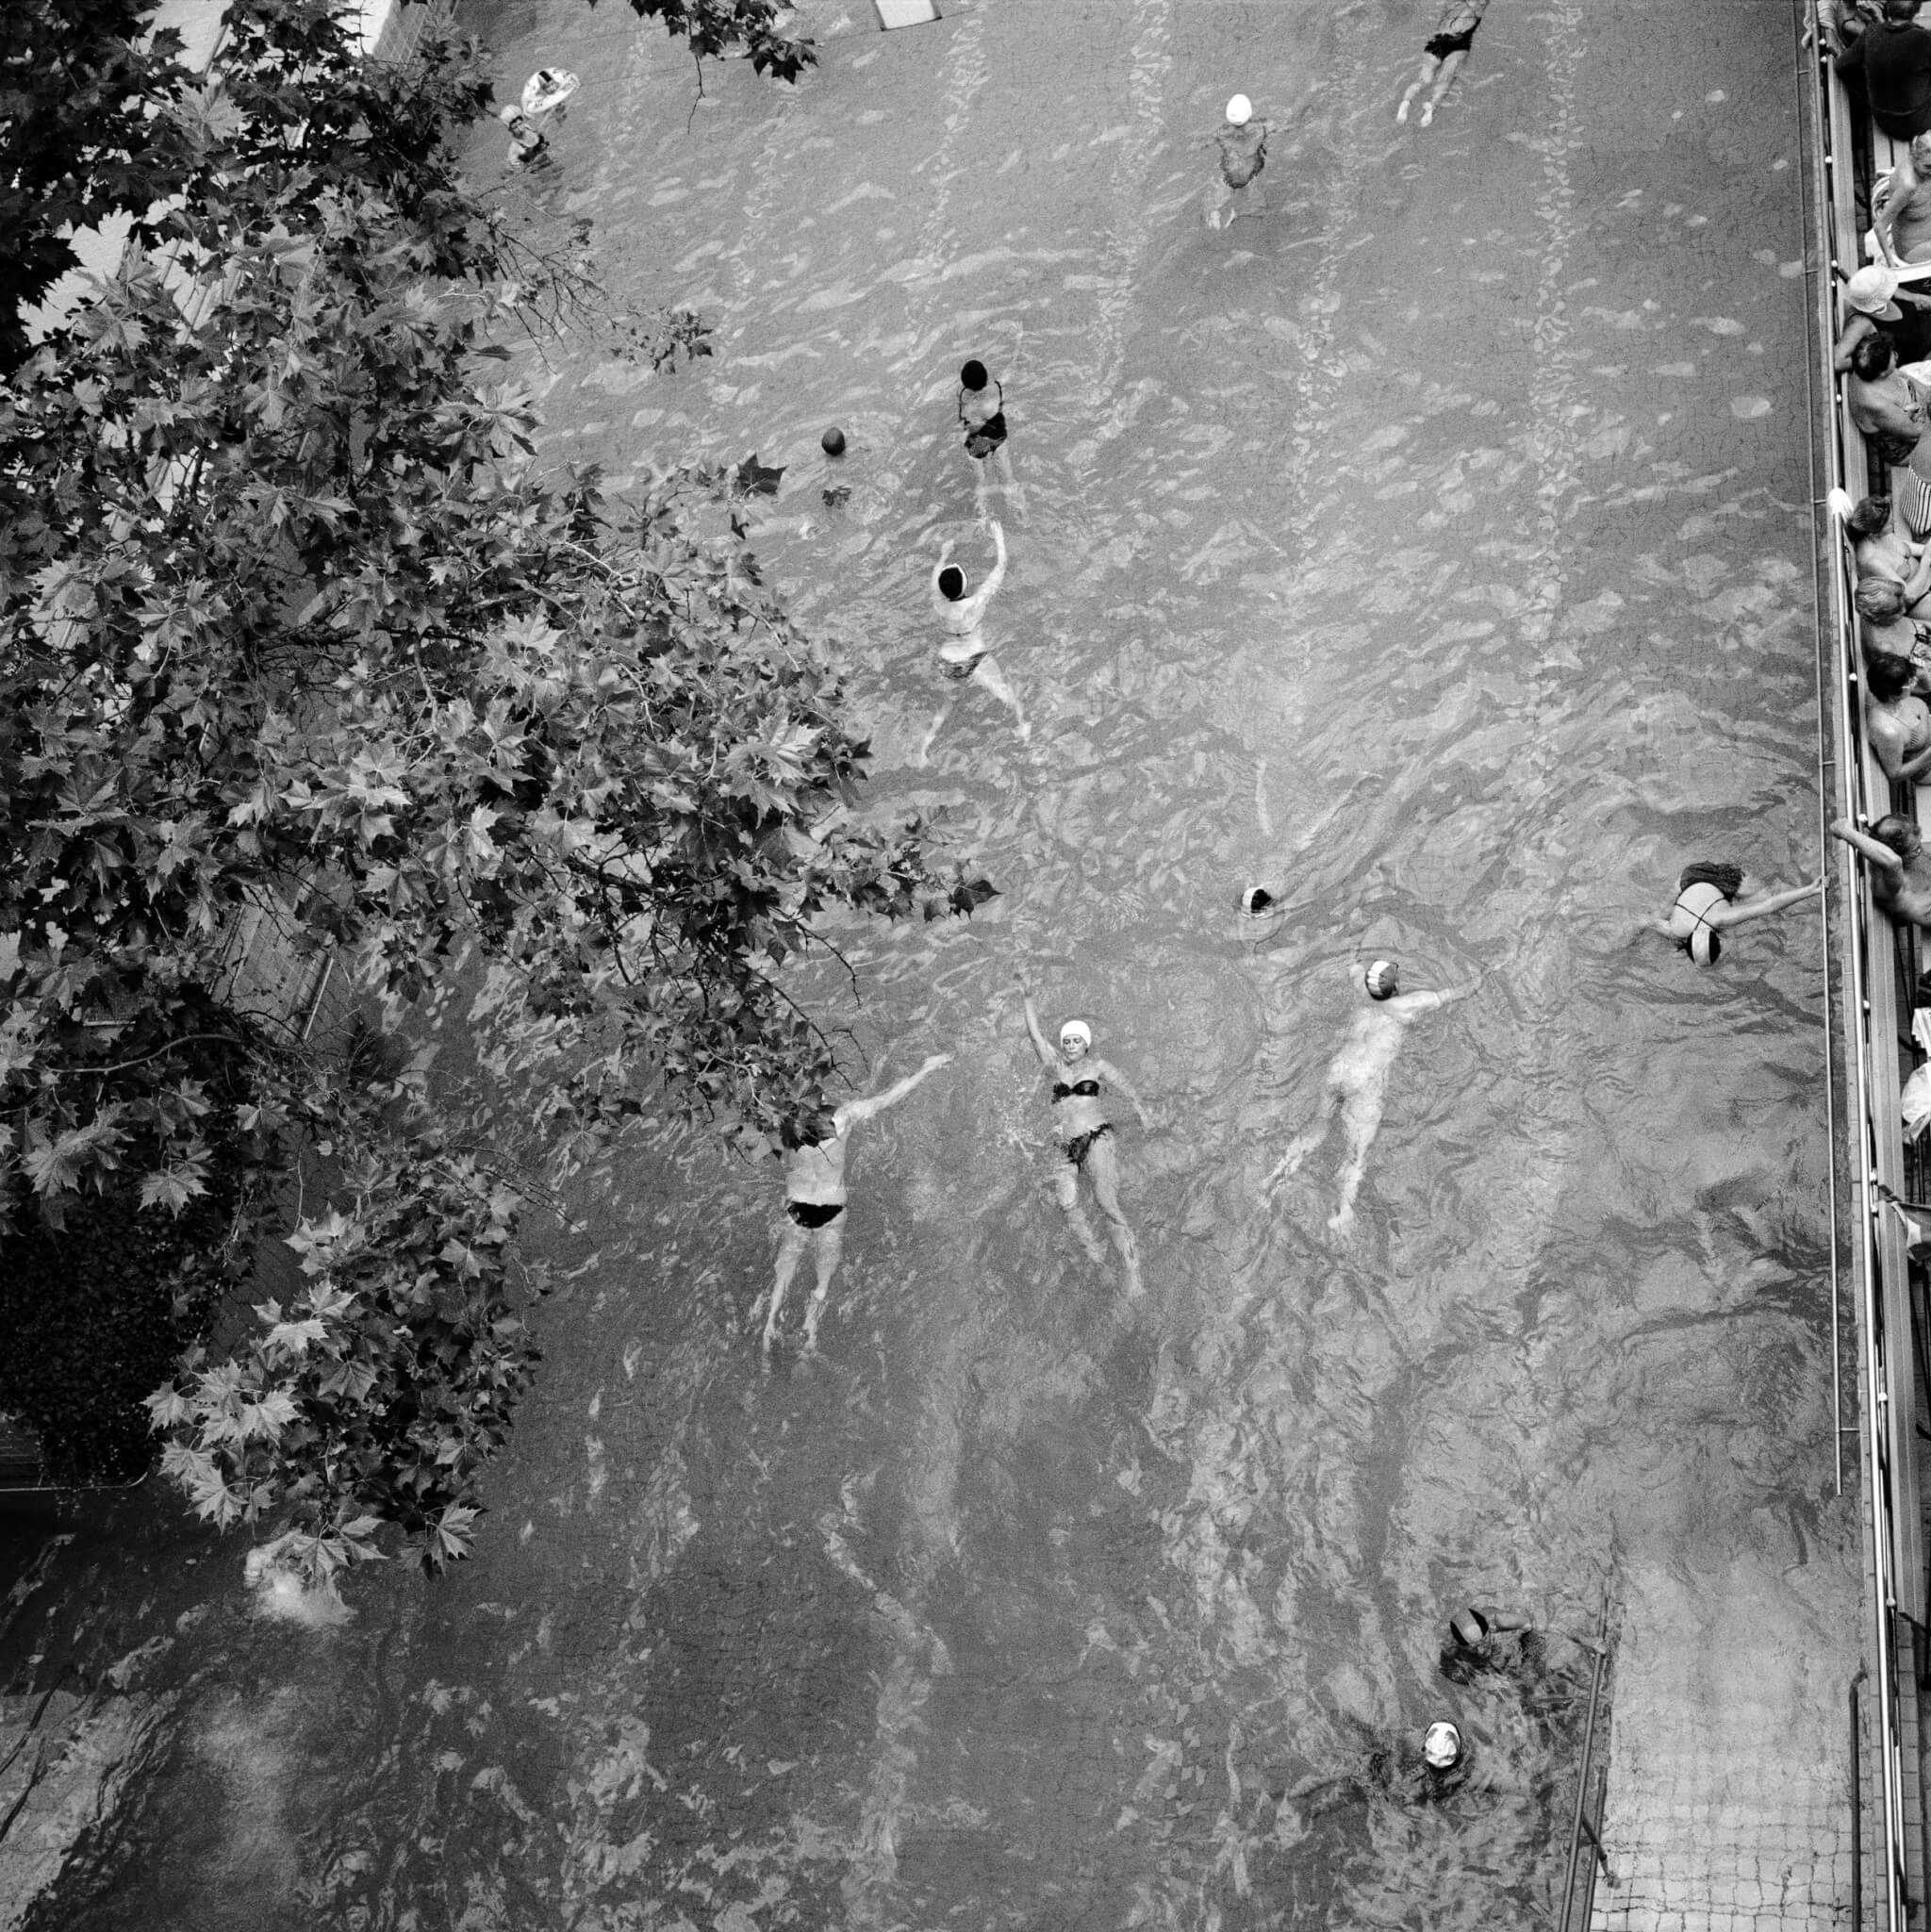 Photograph of Swimmers in a Budapest Pool